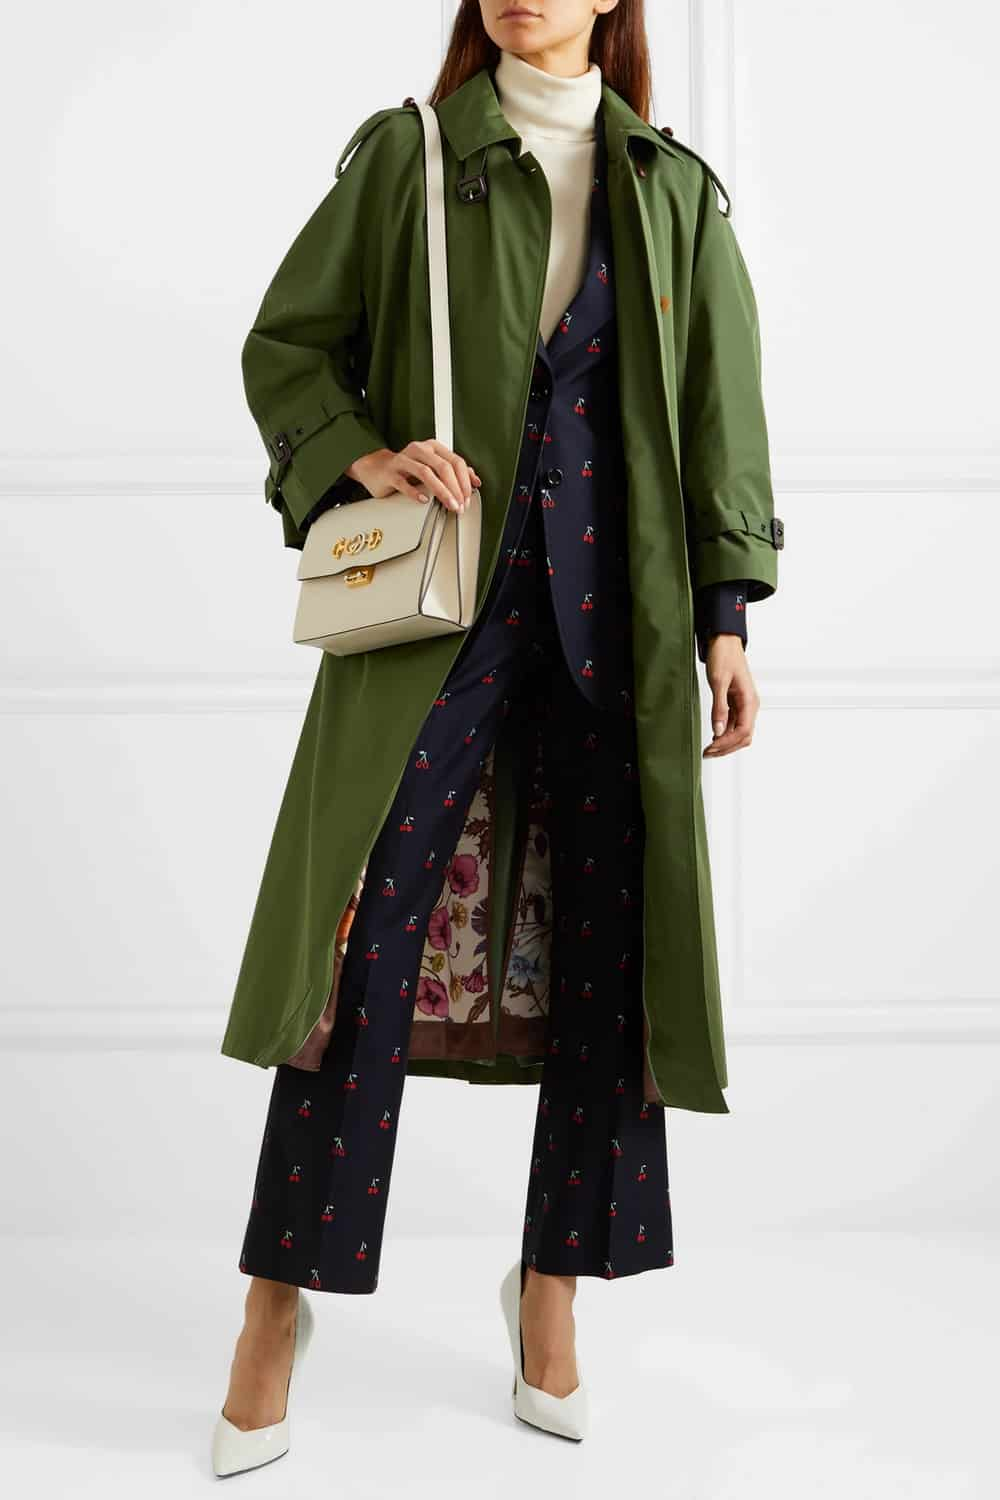 Gucci Oversized Cotton-Blend Trench Coat